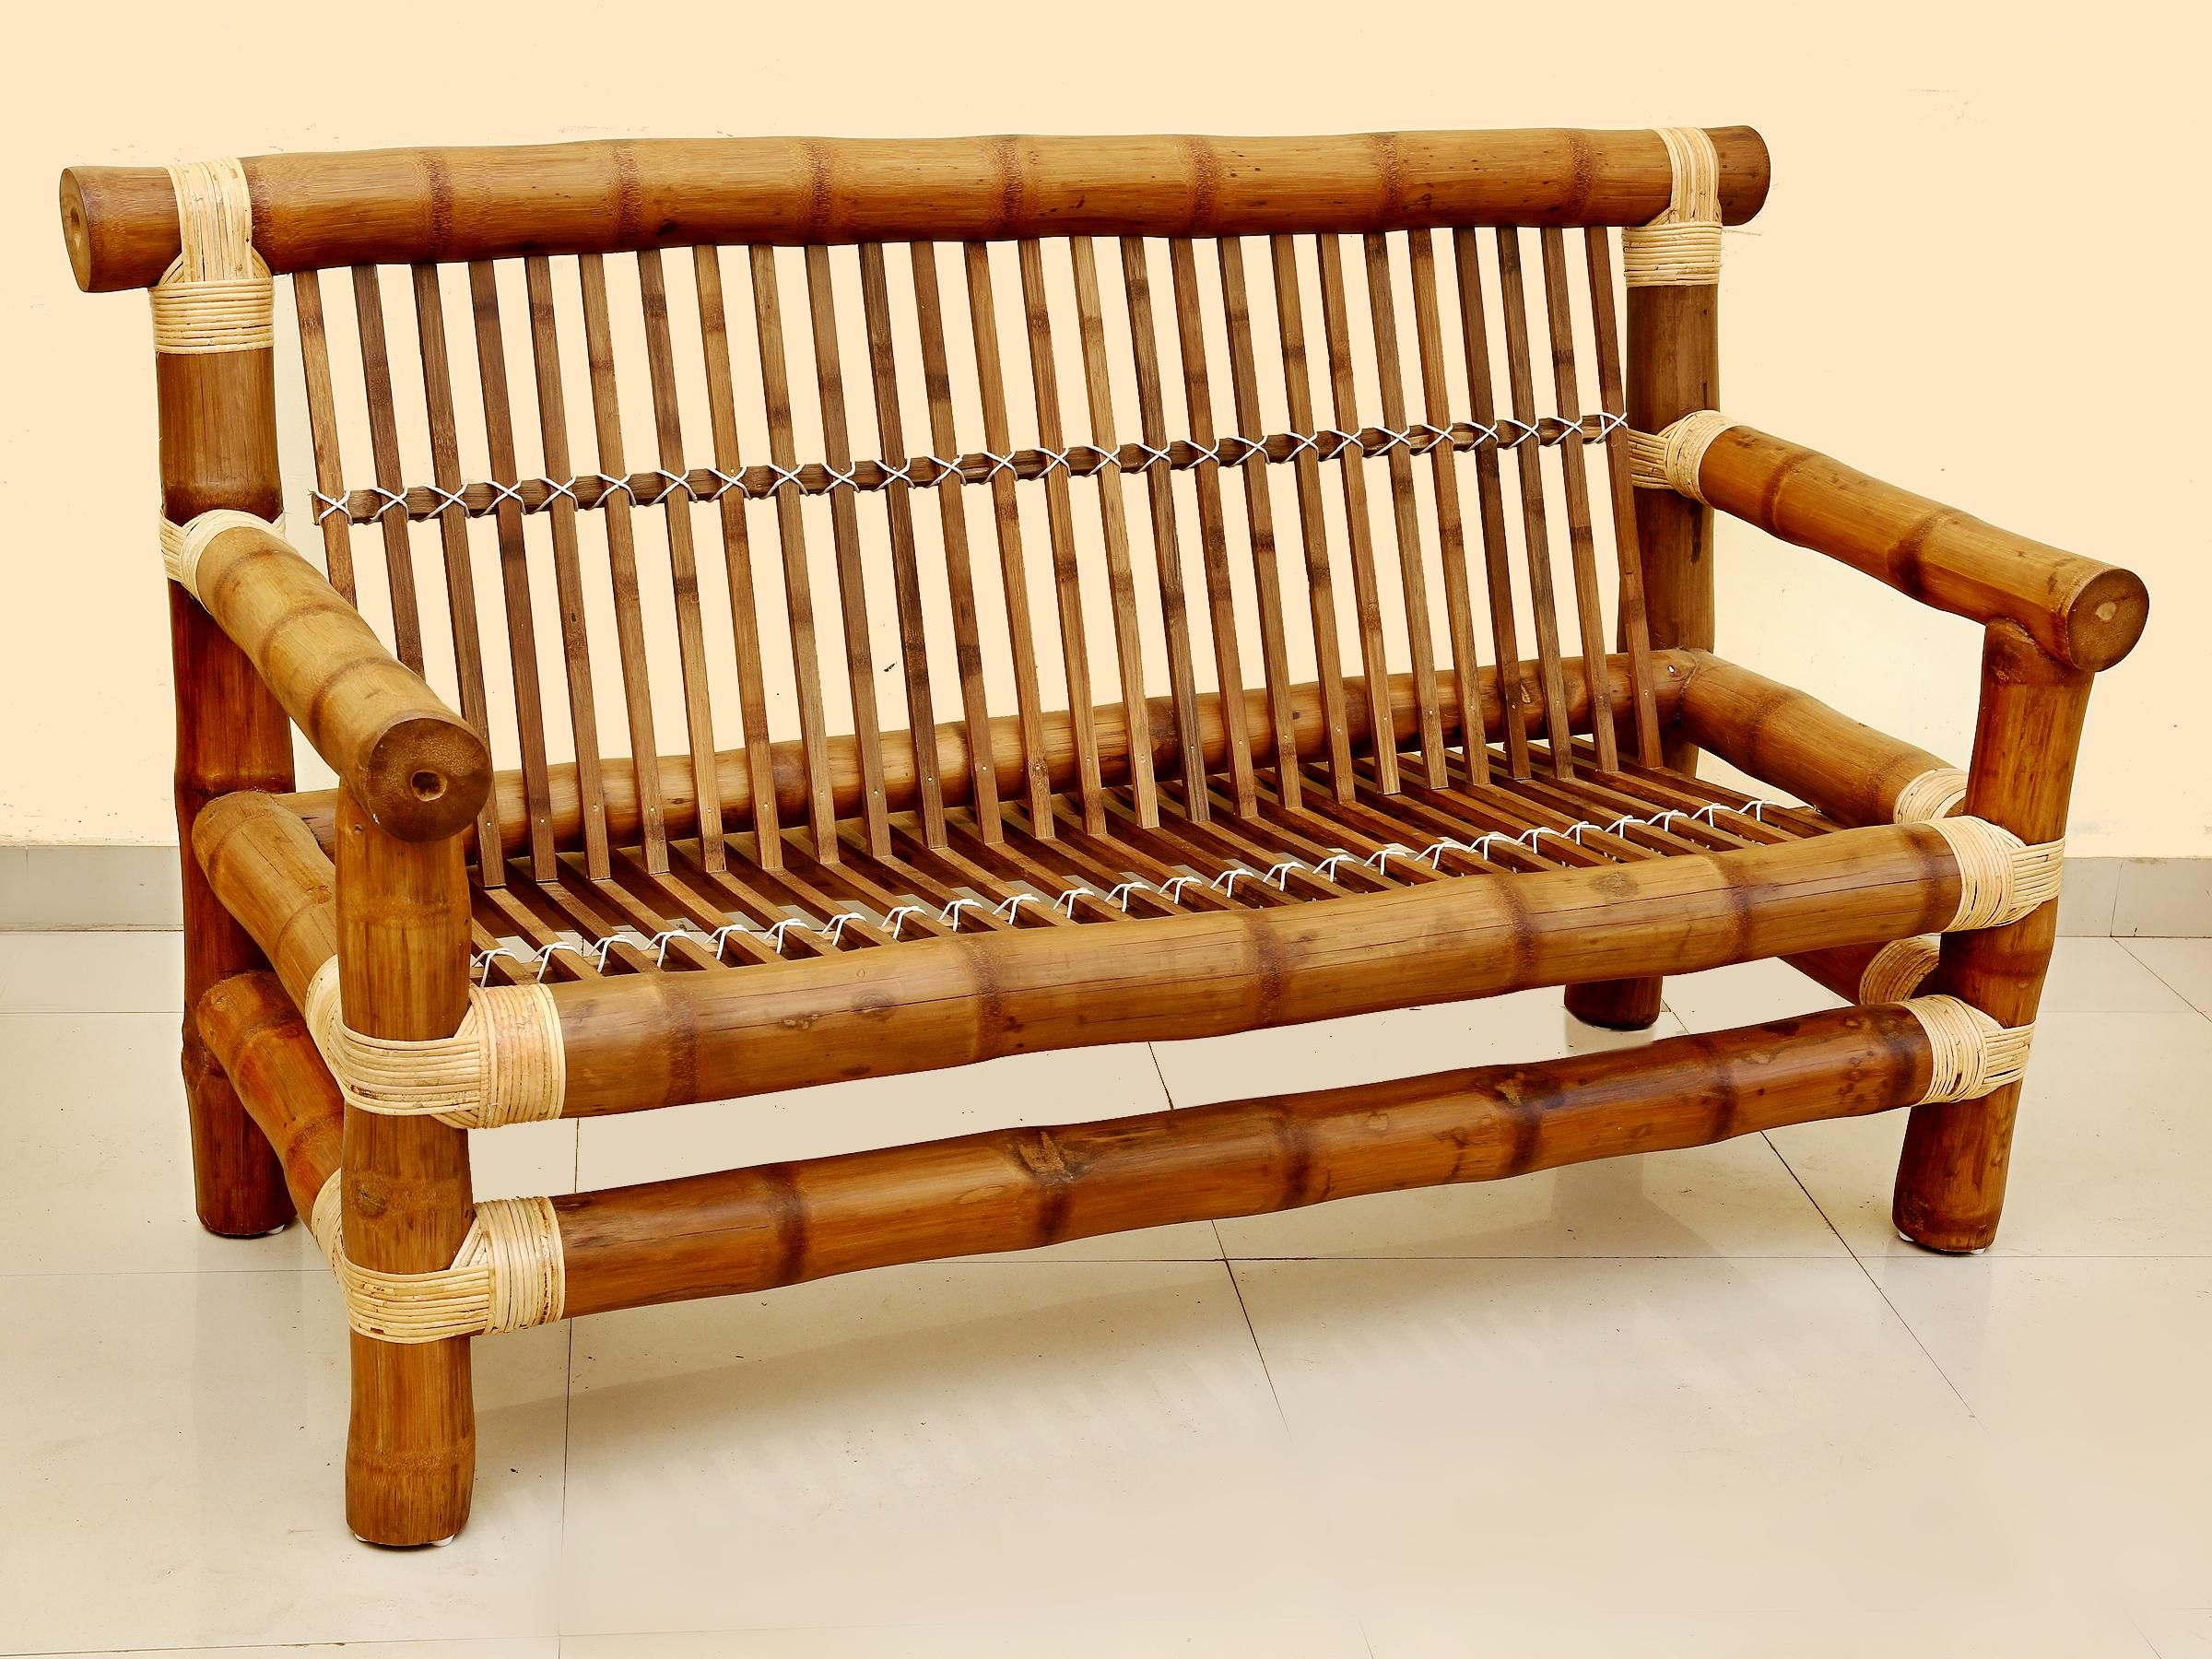 Cane Sofa Set Kerala Covers For Sofas With Pillows Bamboo And Rattan Design I Deahouse Thesofa